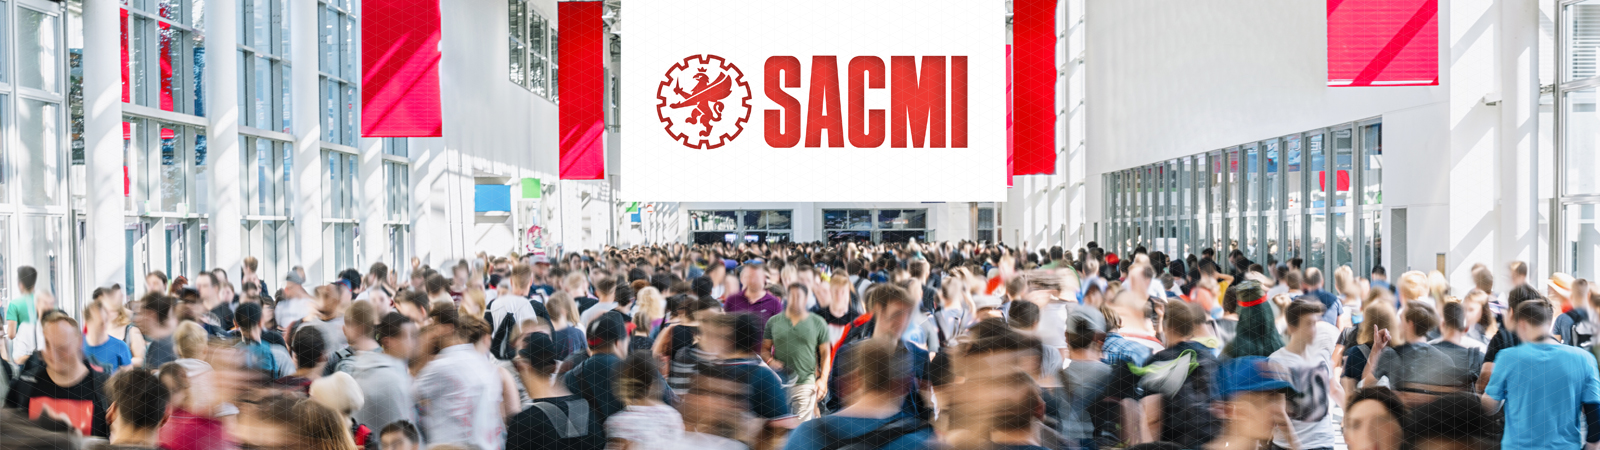 Sacmi Events